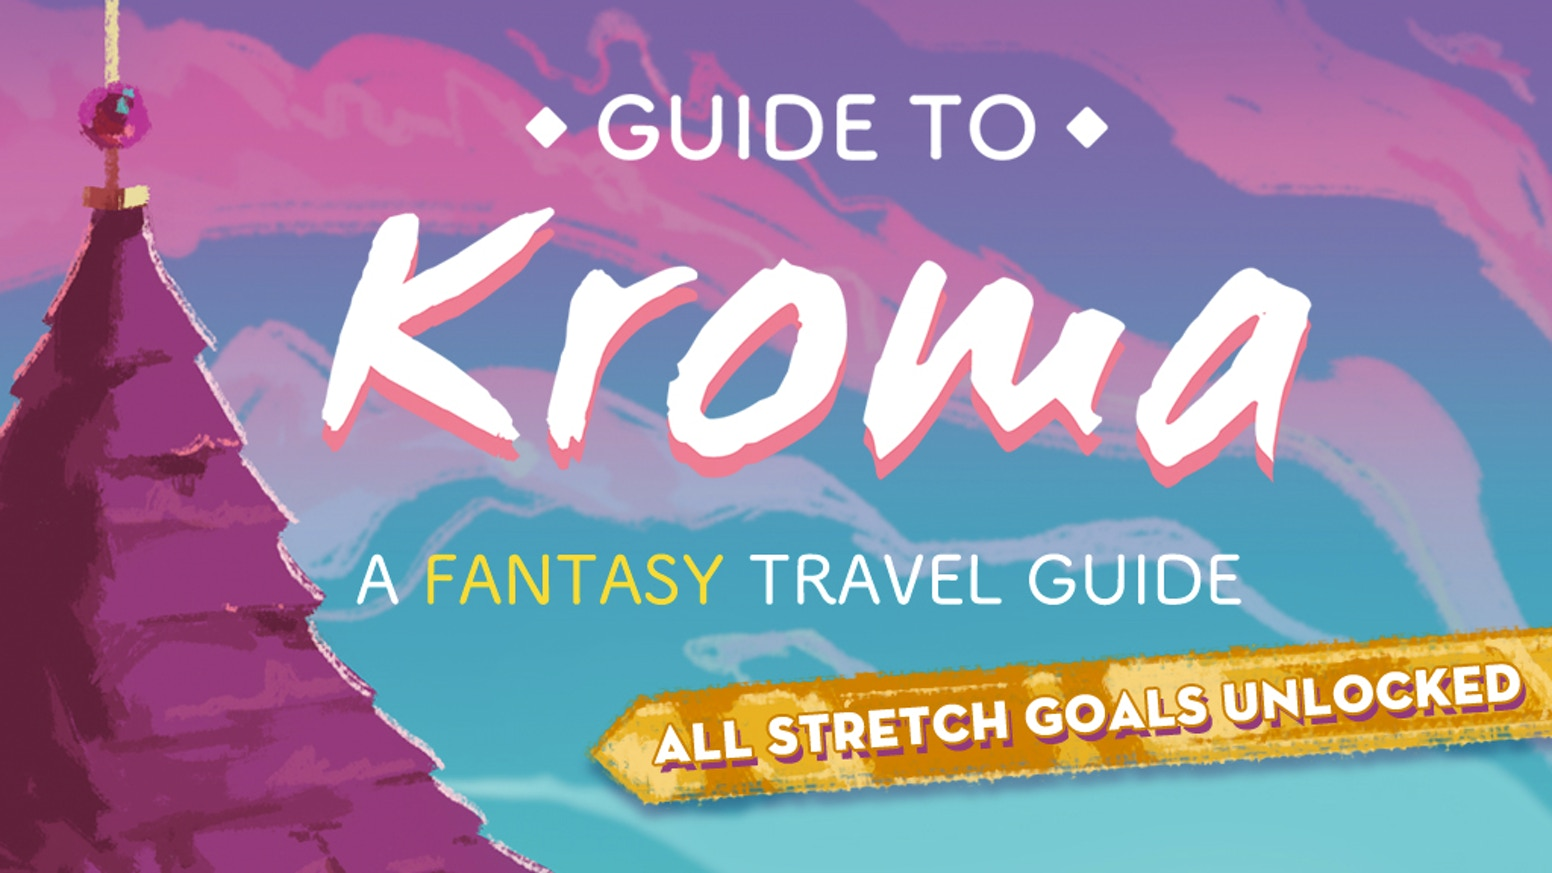 A fantasy travel guide for fans of tabletop games, roleplay, and adventure!